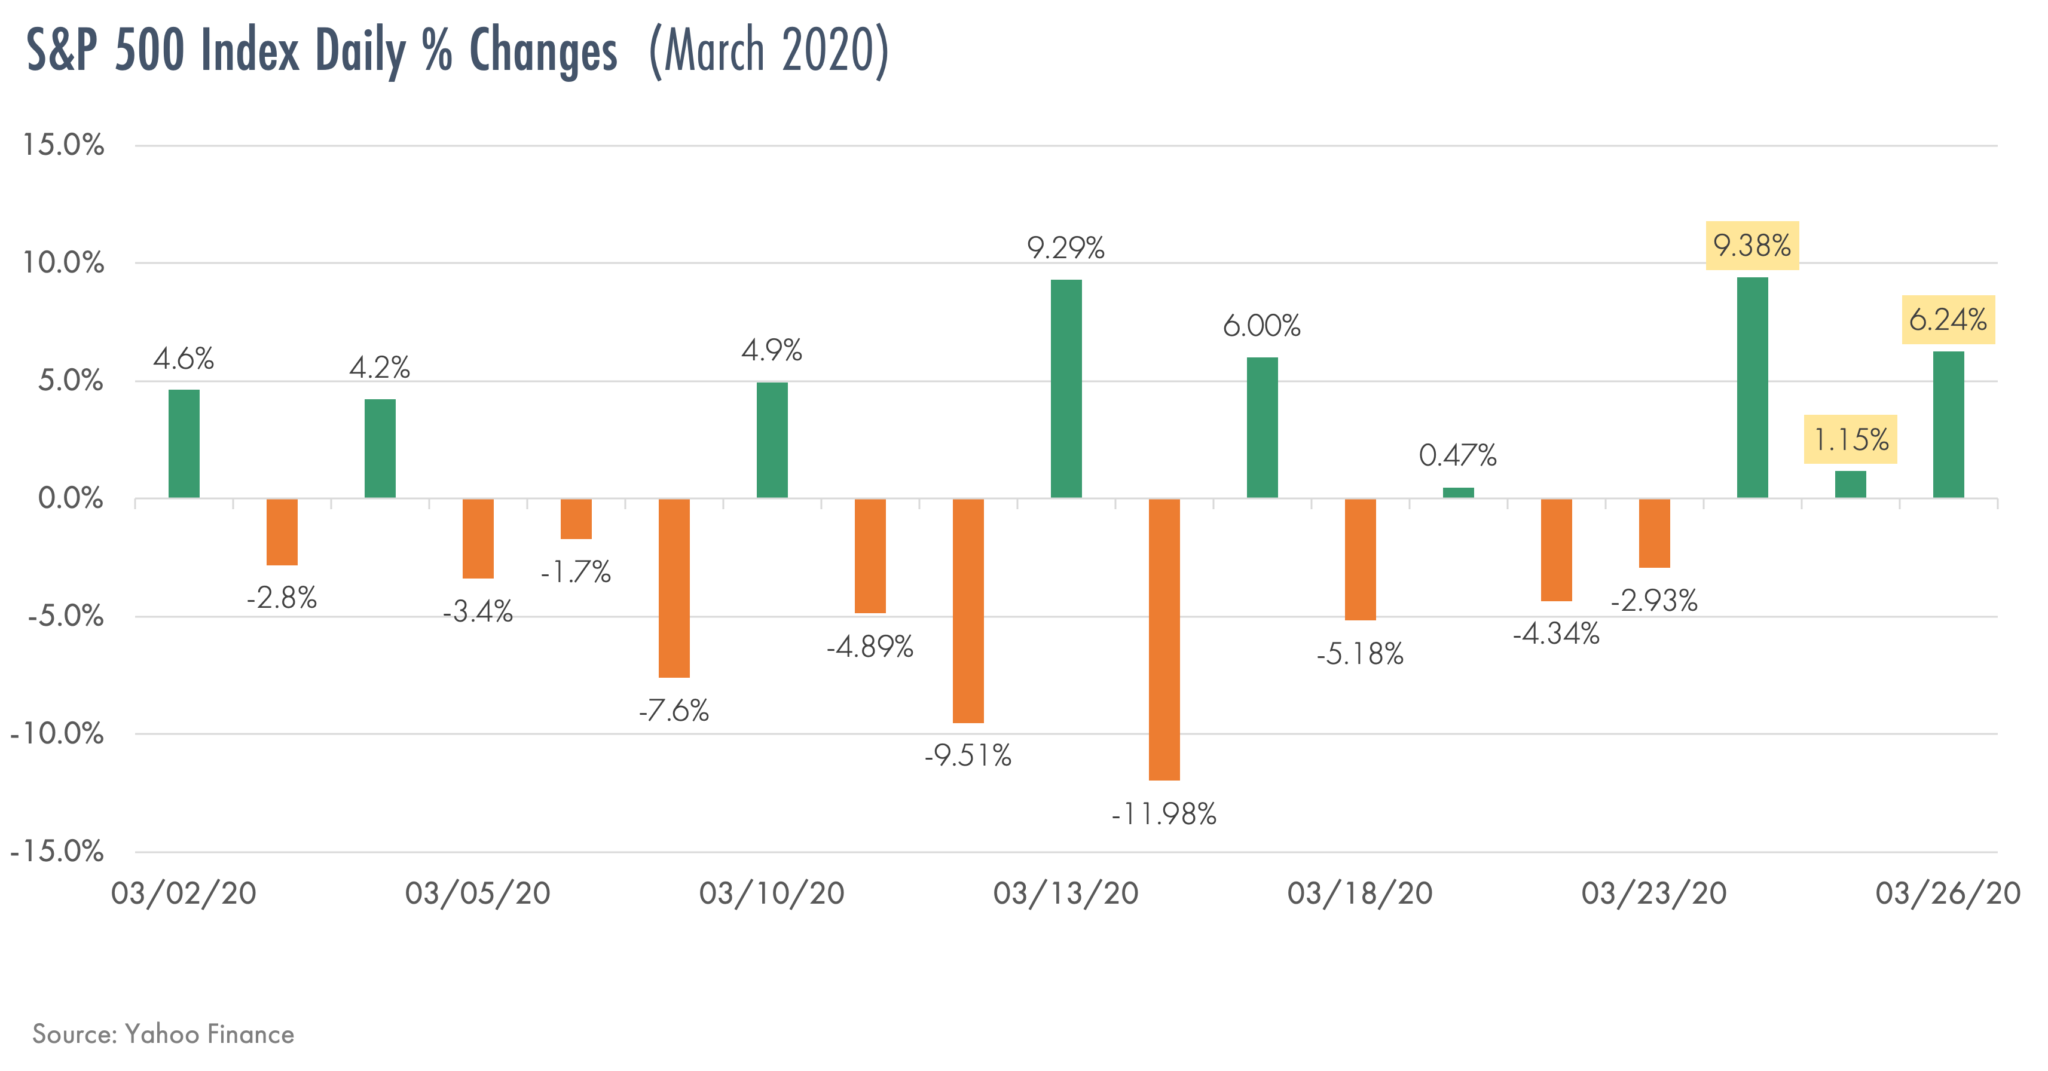 Chart Graphic of S&P 500 Index Daily Changes in March since coronavirus COVID-19